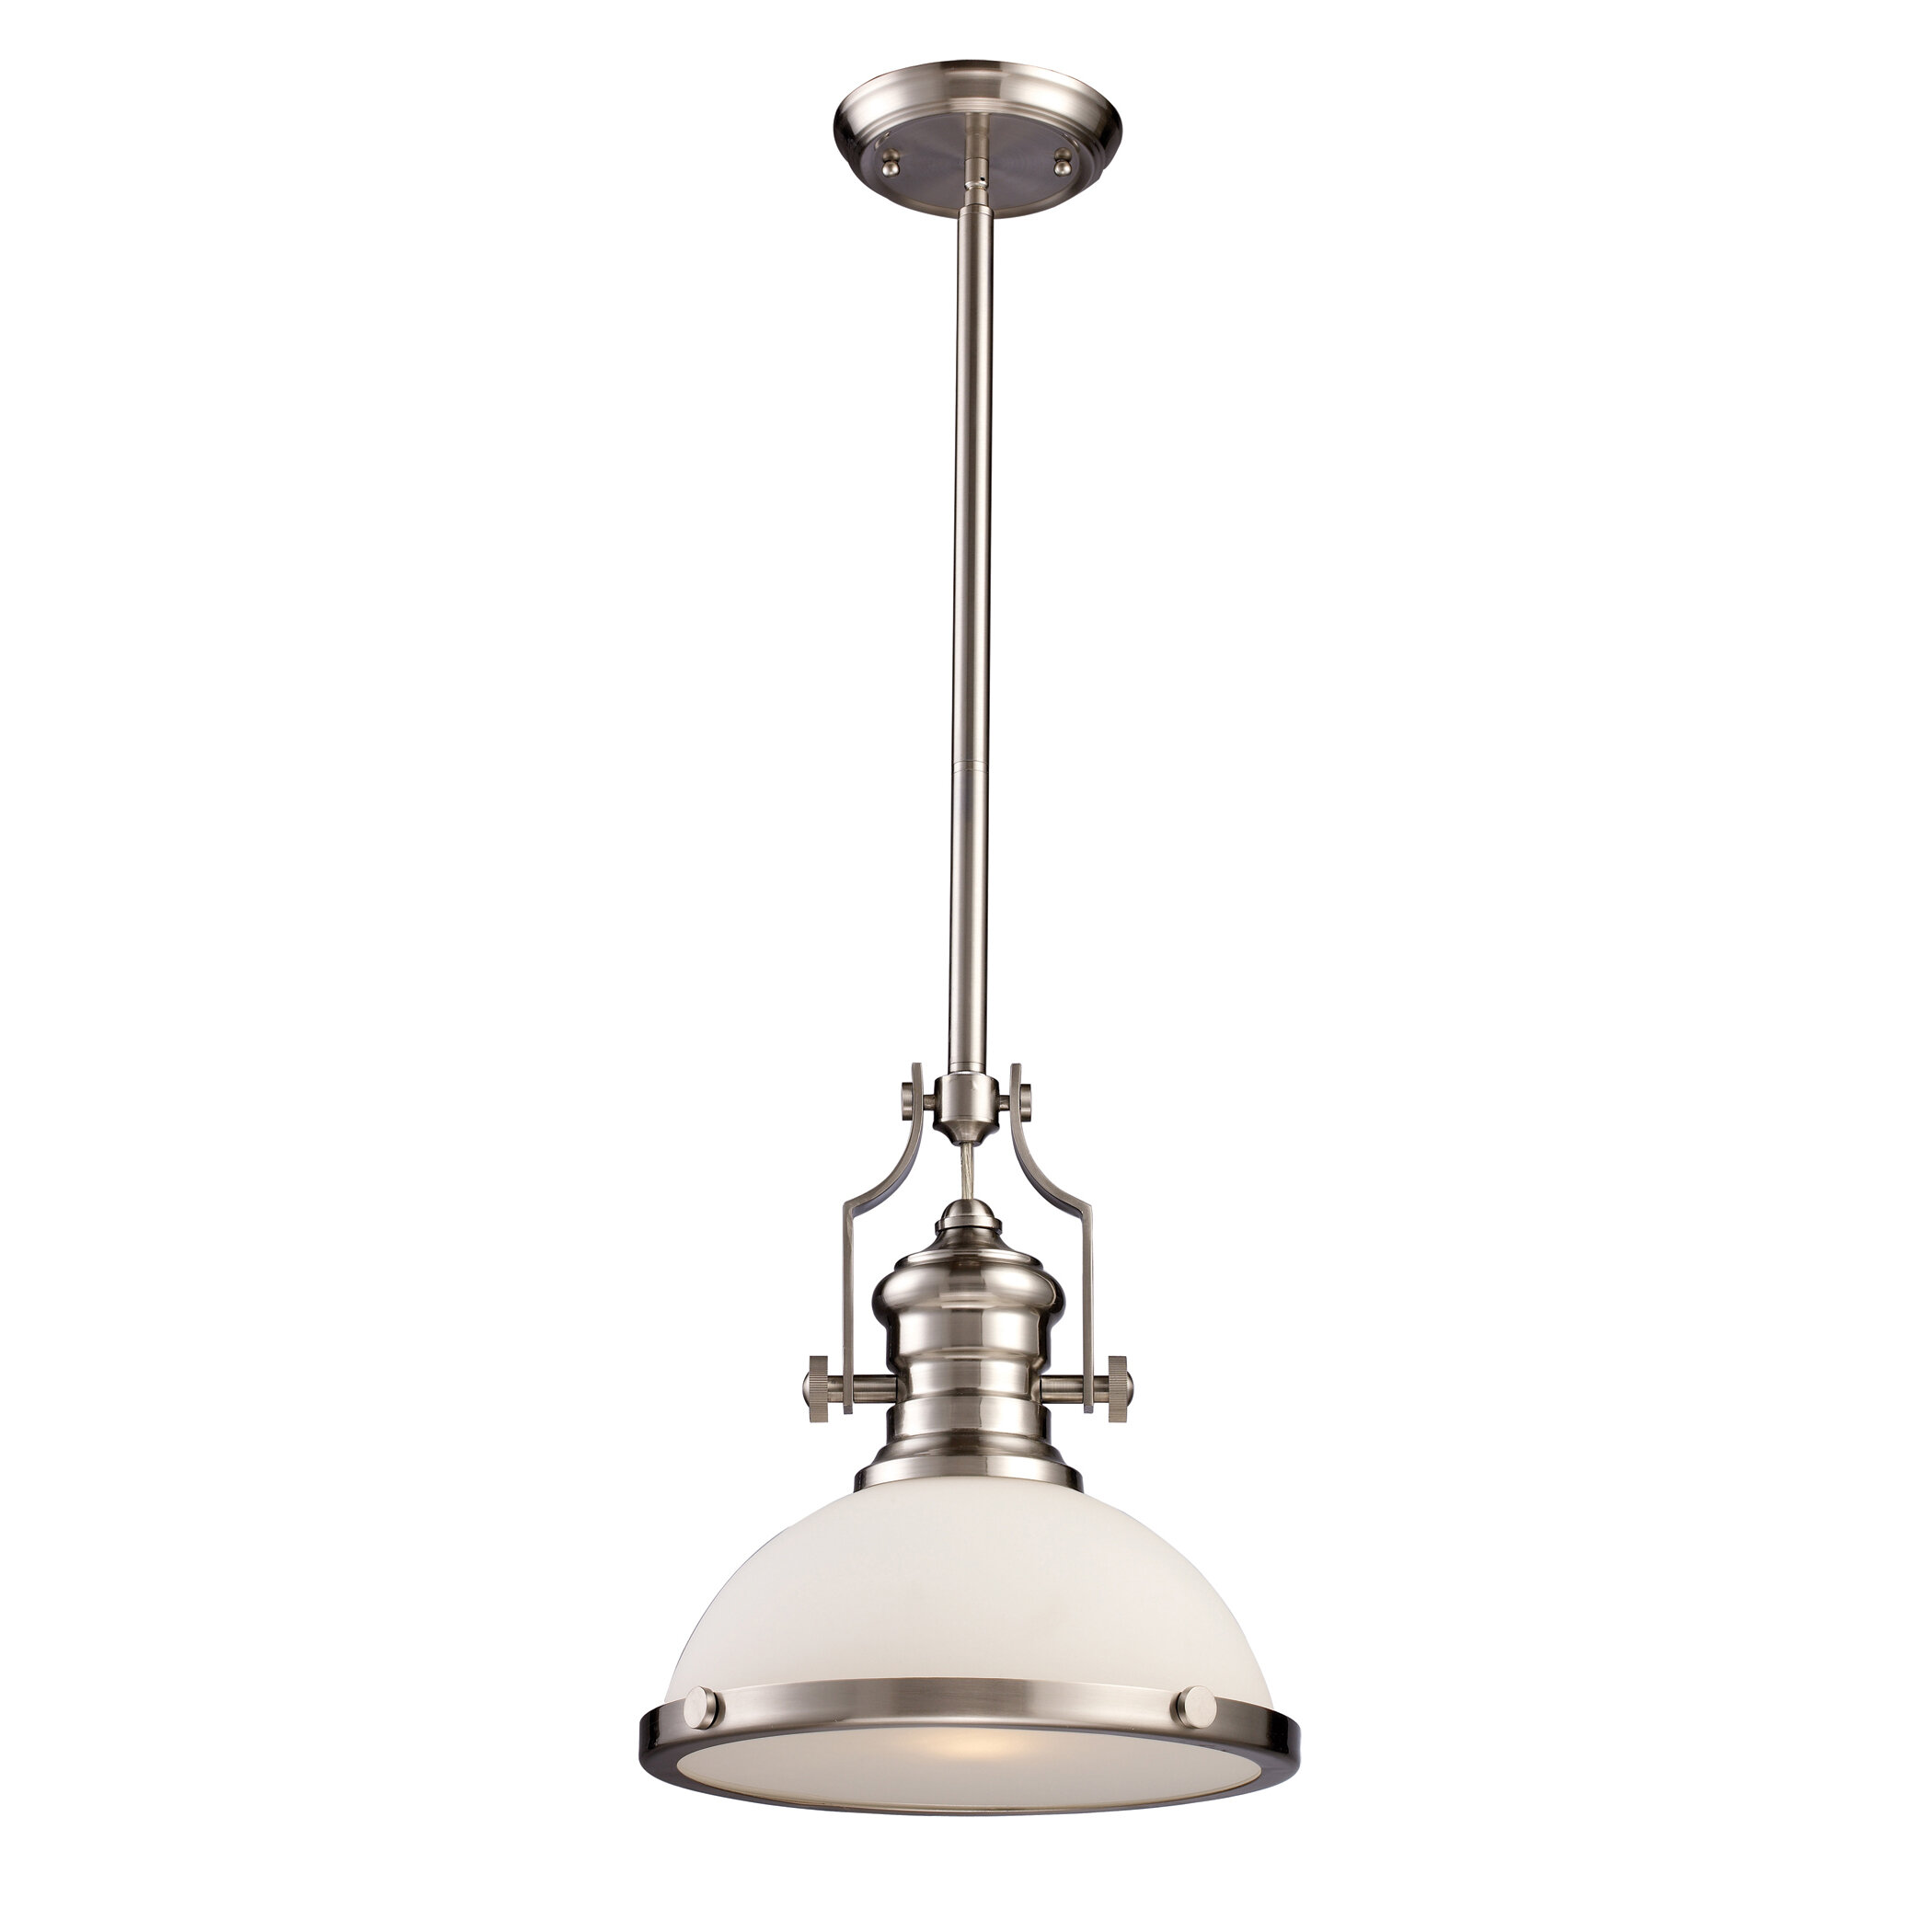 valley pelham wide lighting pn in hudson glass cfm item pendant capitol light nickel magnifying polished inch finish mini shown image